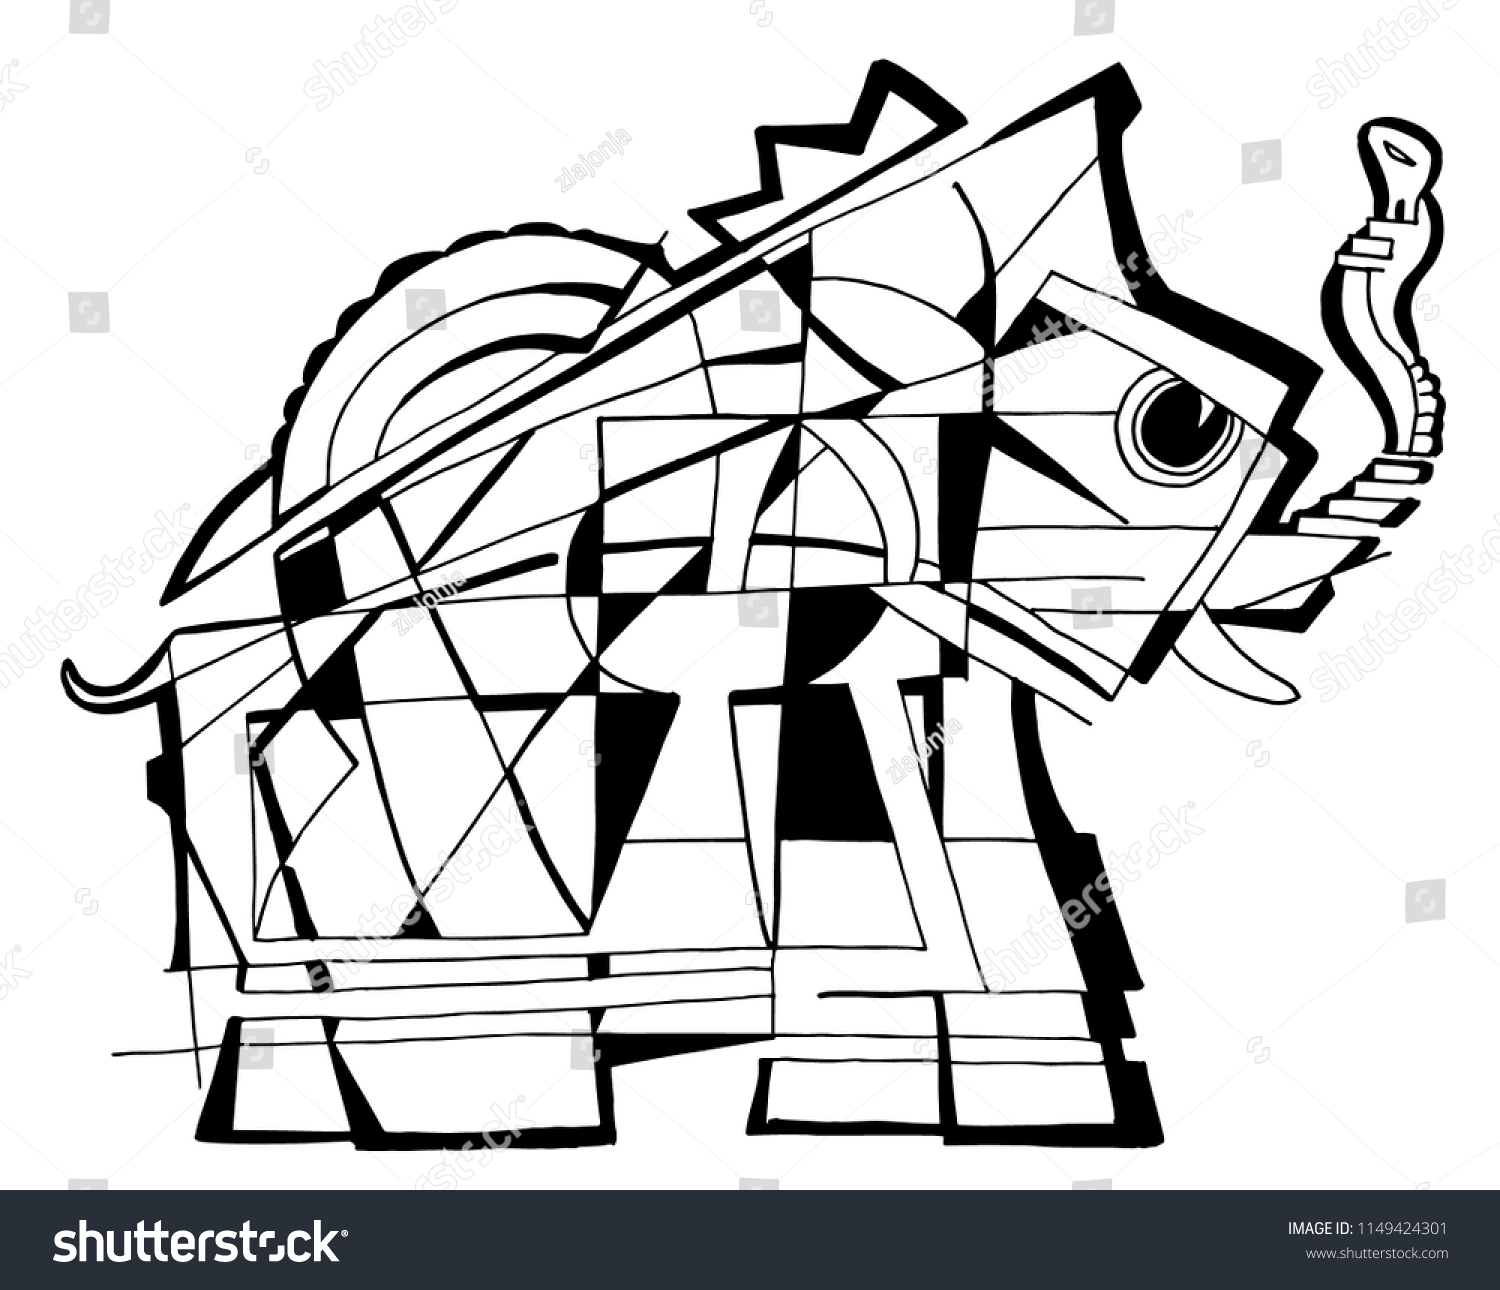 Elephant Coloring Page Abstract Stock Vector Royalty Free 1149424301